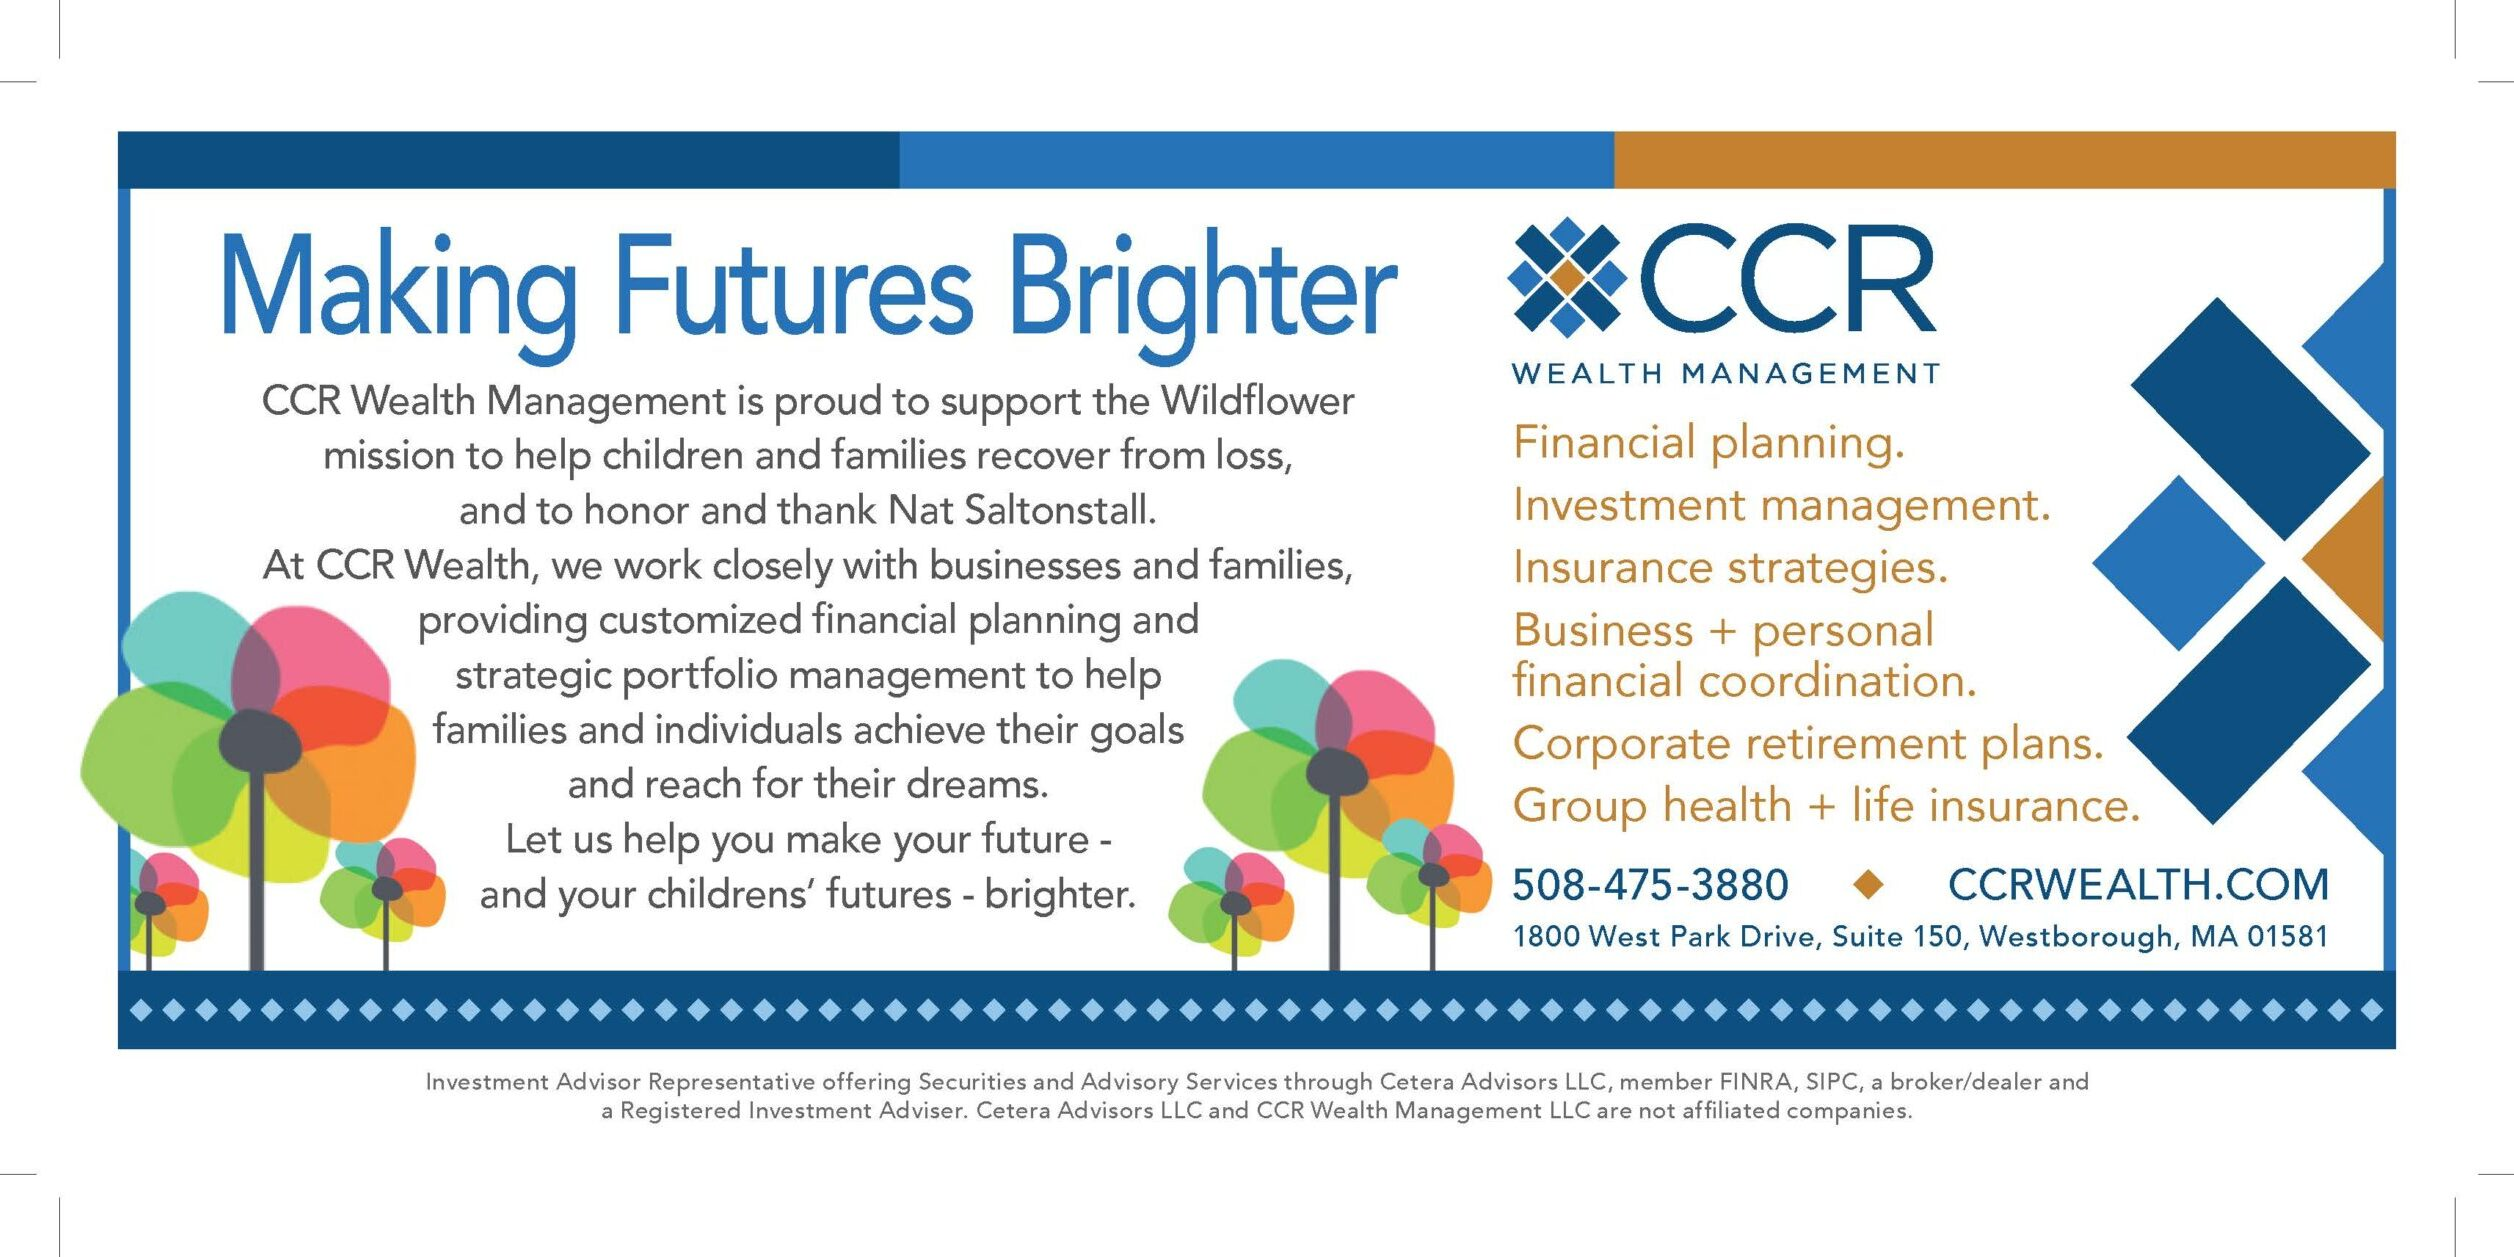 CCR_Wealth_Wildflower_AD_03-15-20